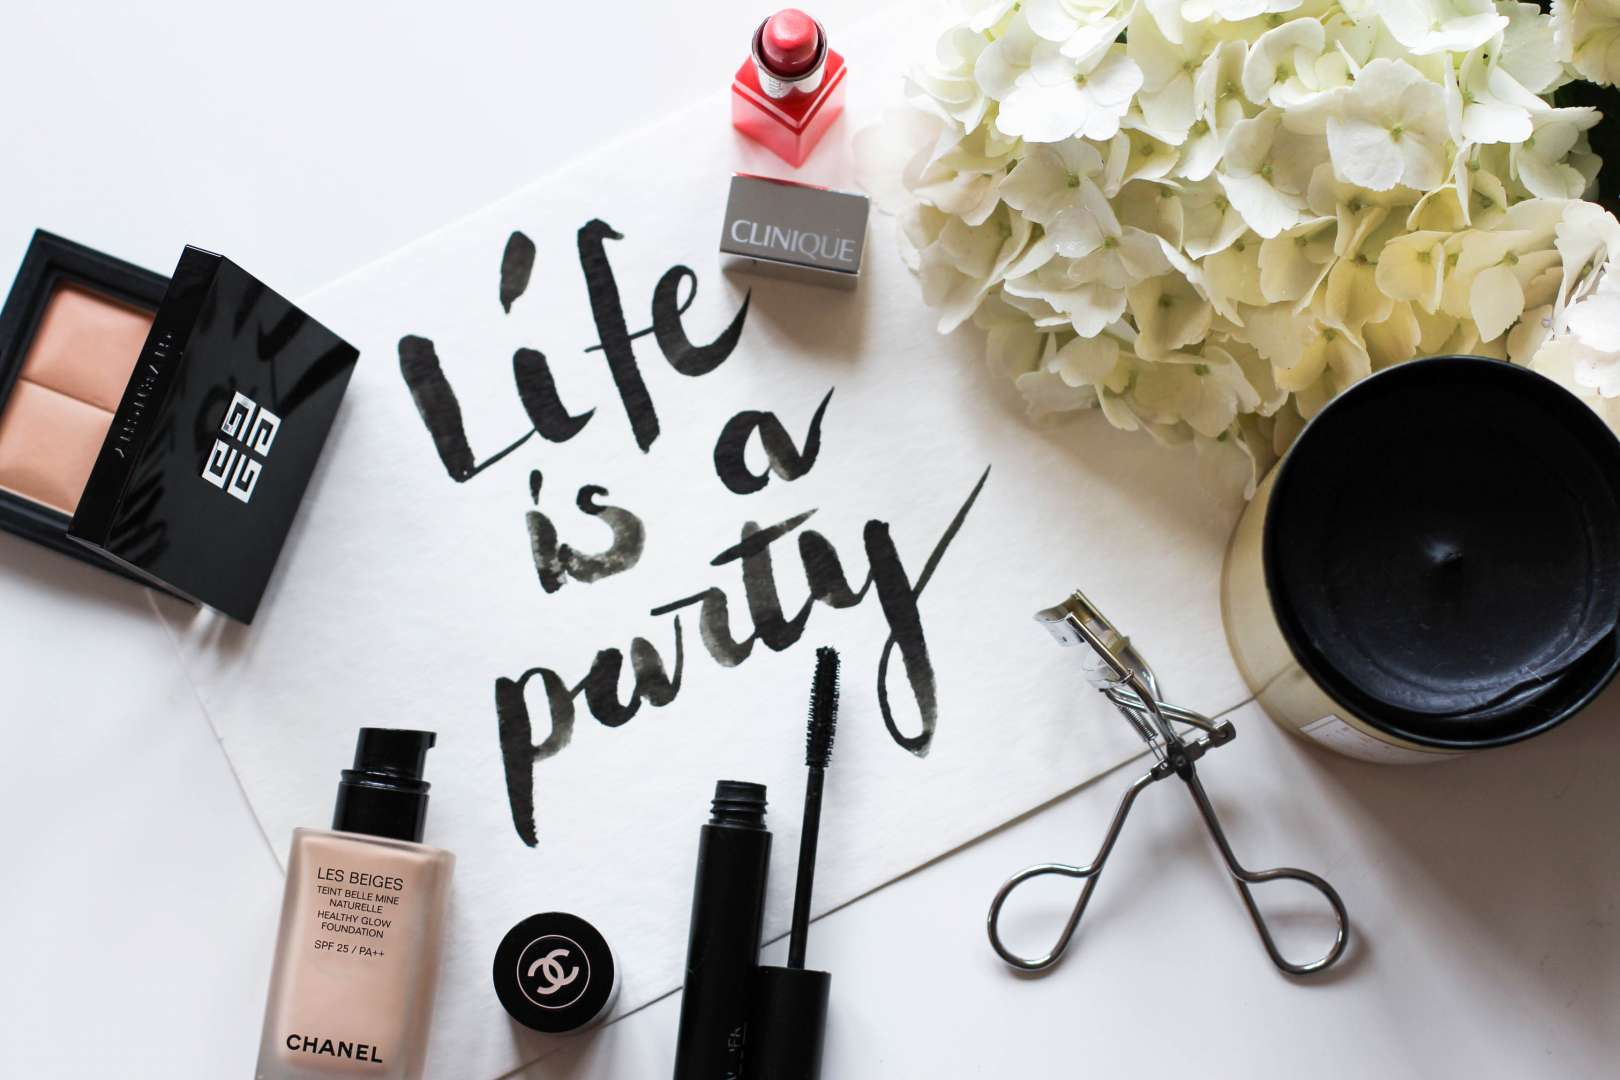 5 beauty essentials maquillage beauty makeup givenchy chanel clinique estée lauder flatlay review